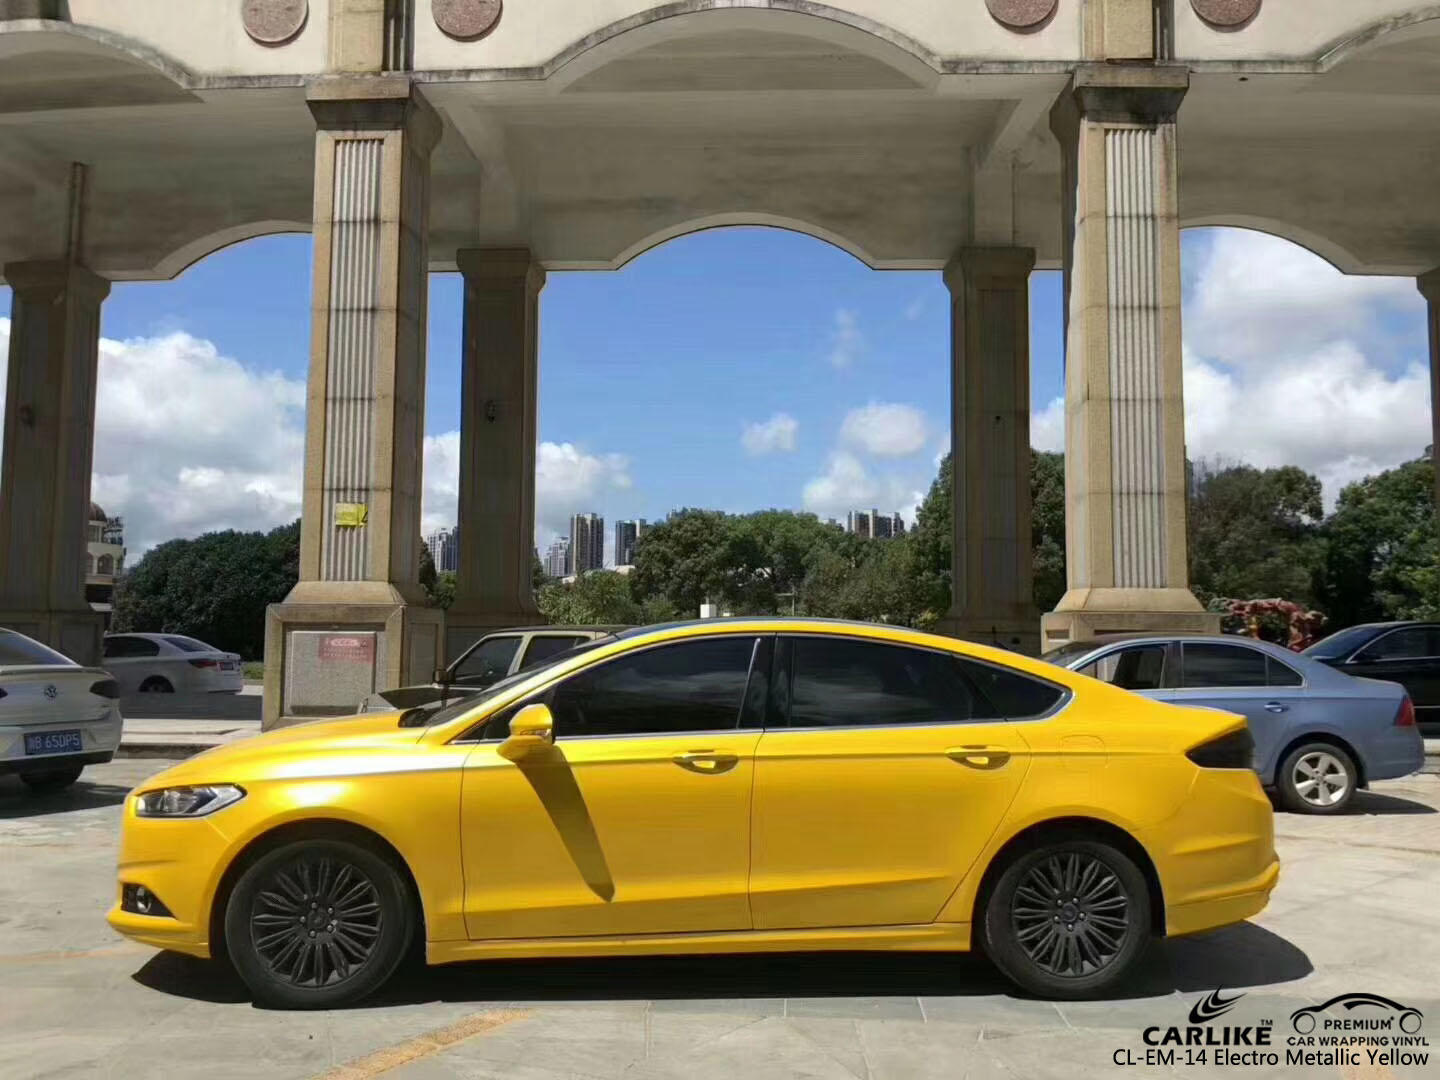 CARLIKE CL-EM-14 ELECTRO METALLIC YELLOW VINYL FOR FORD